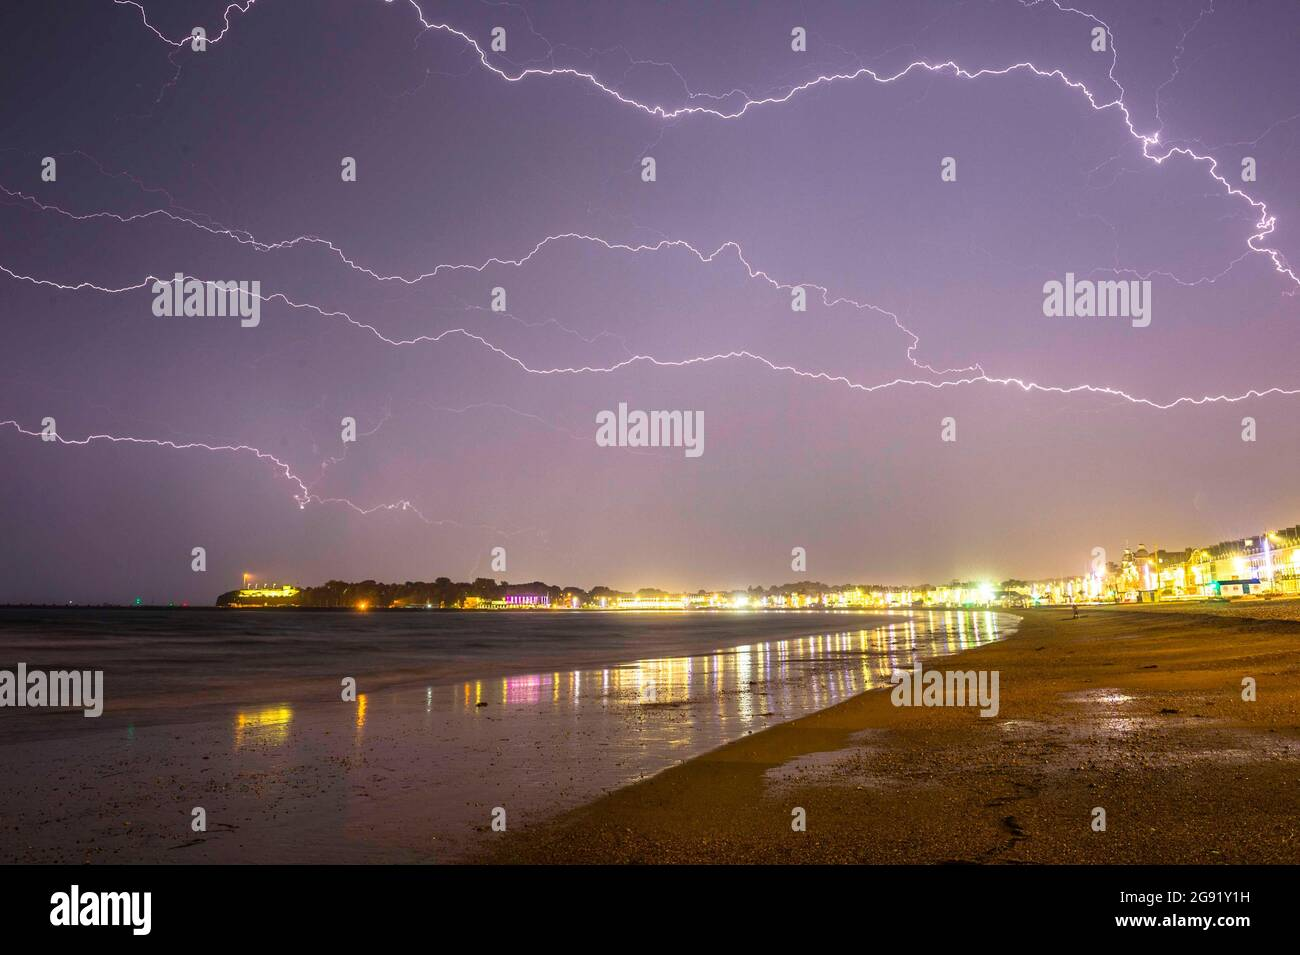 Weymouth, Dorset, UK.  24th July 2021.  UK Weather.  Streaks of lightning fills the sky above the seaside resort of Weymouth in Dorset as heavy rain and thunderstorms pass through overnight as the weeklong heatwave ends with a bang.  Picture Credit: Graham Hunt/Alamy Live News Stock Photo